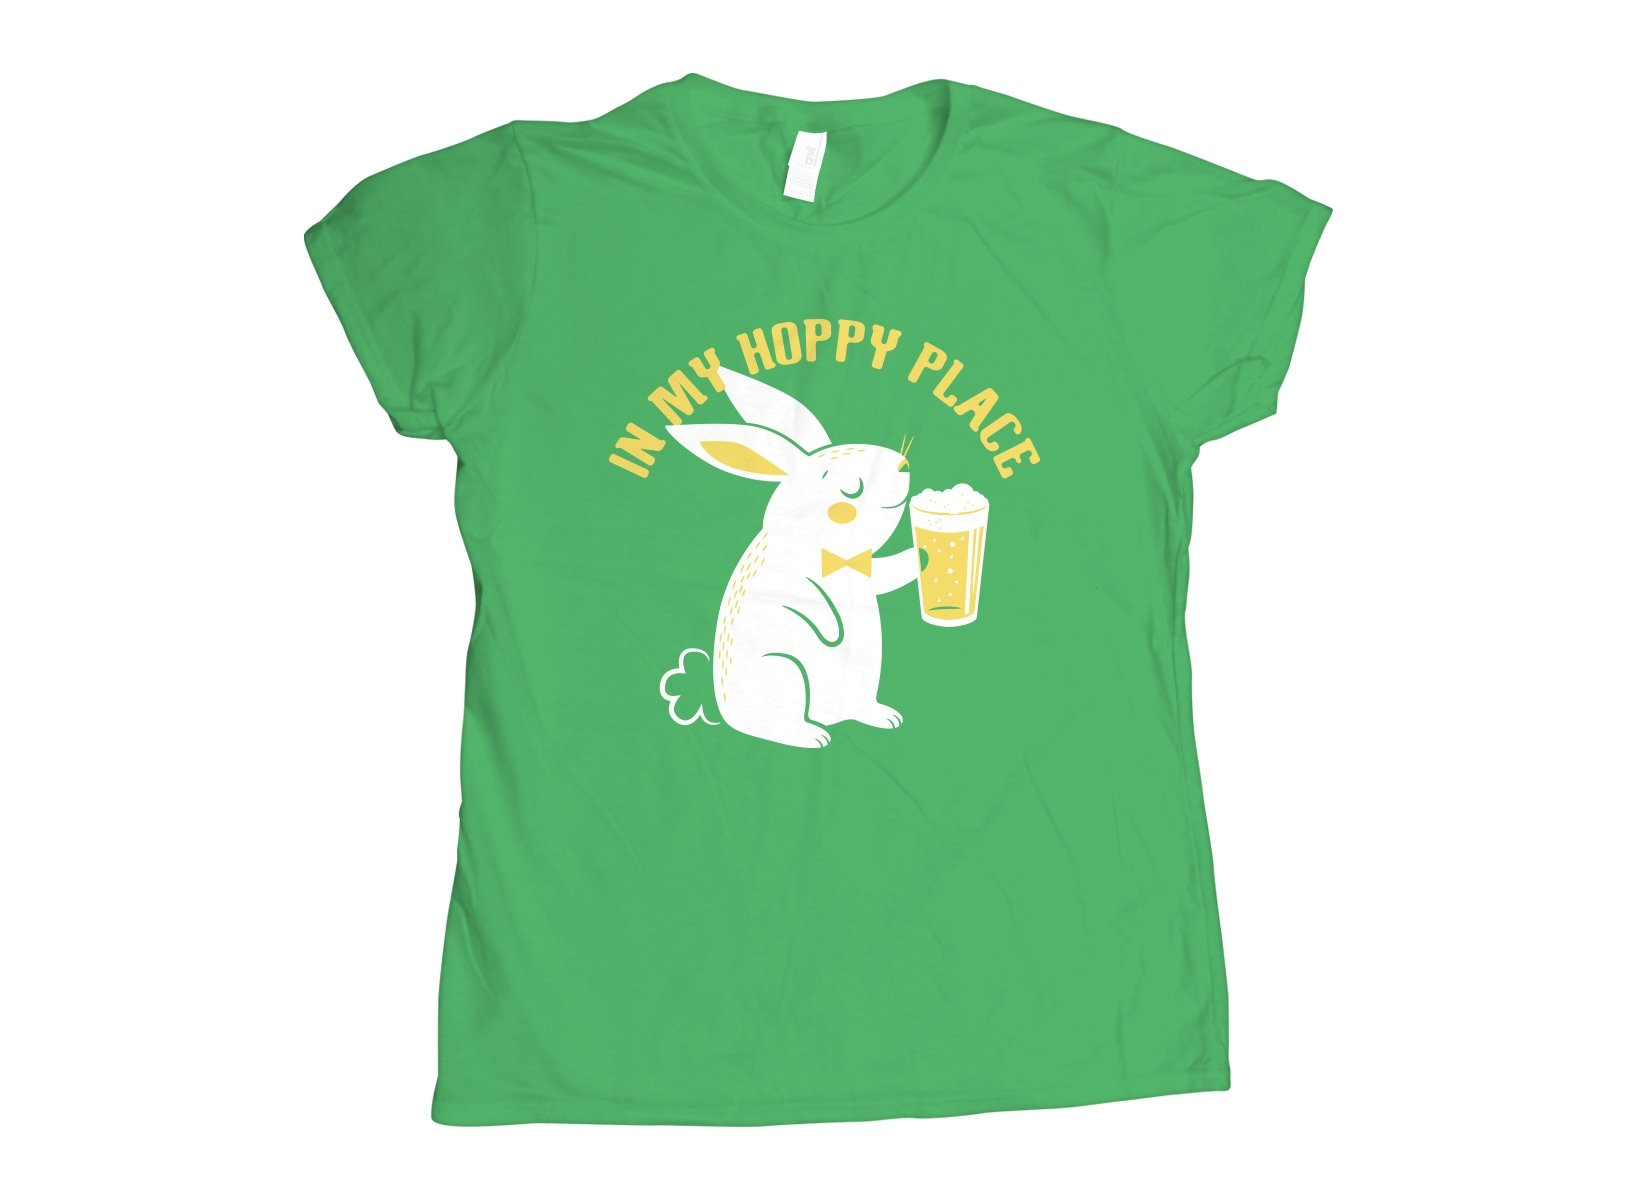 In My Hoppy Place on Womens T-Shirt